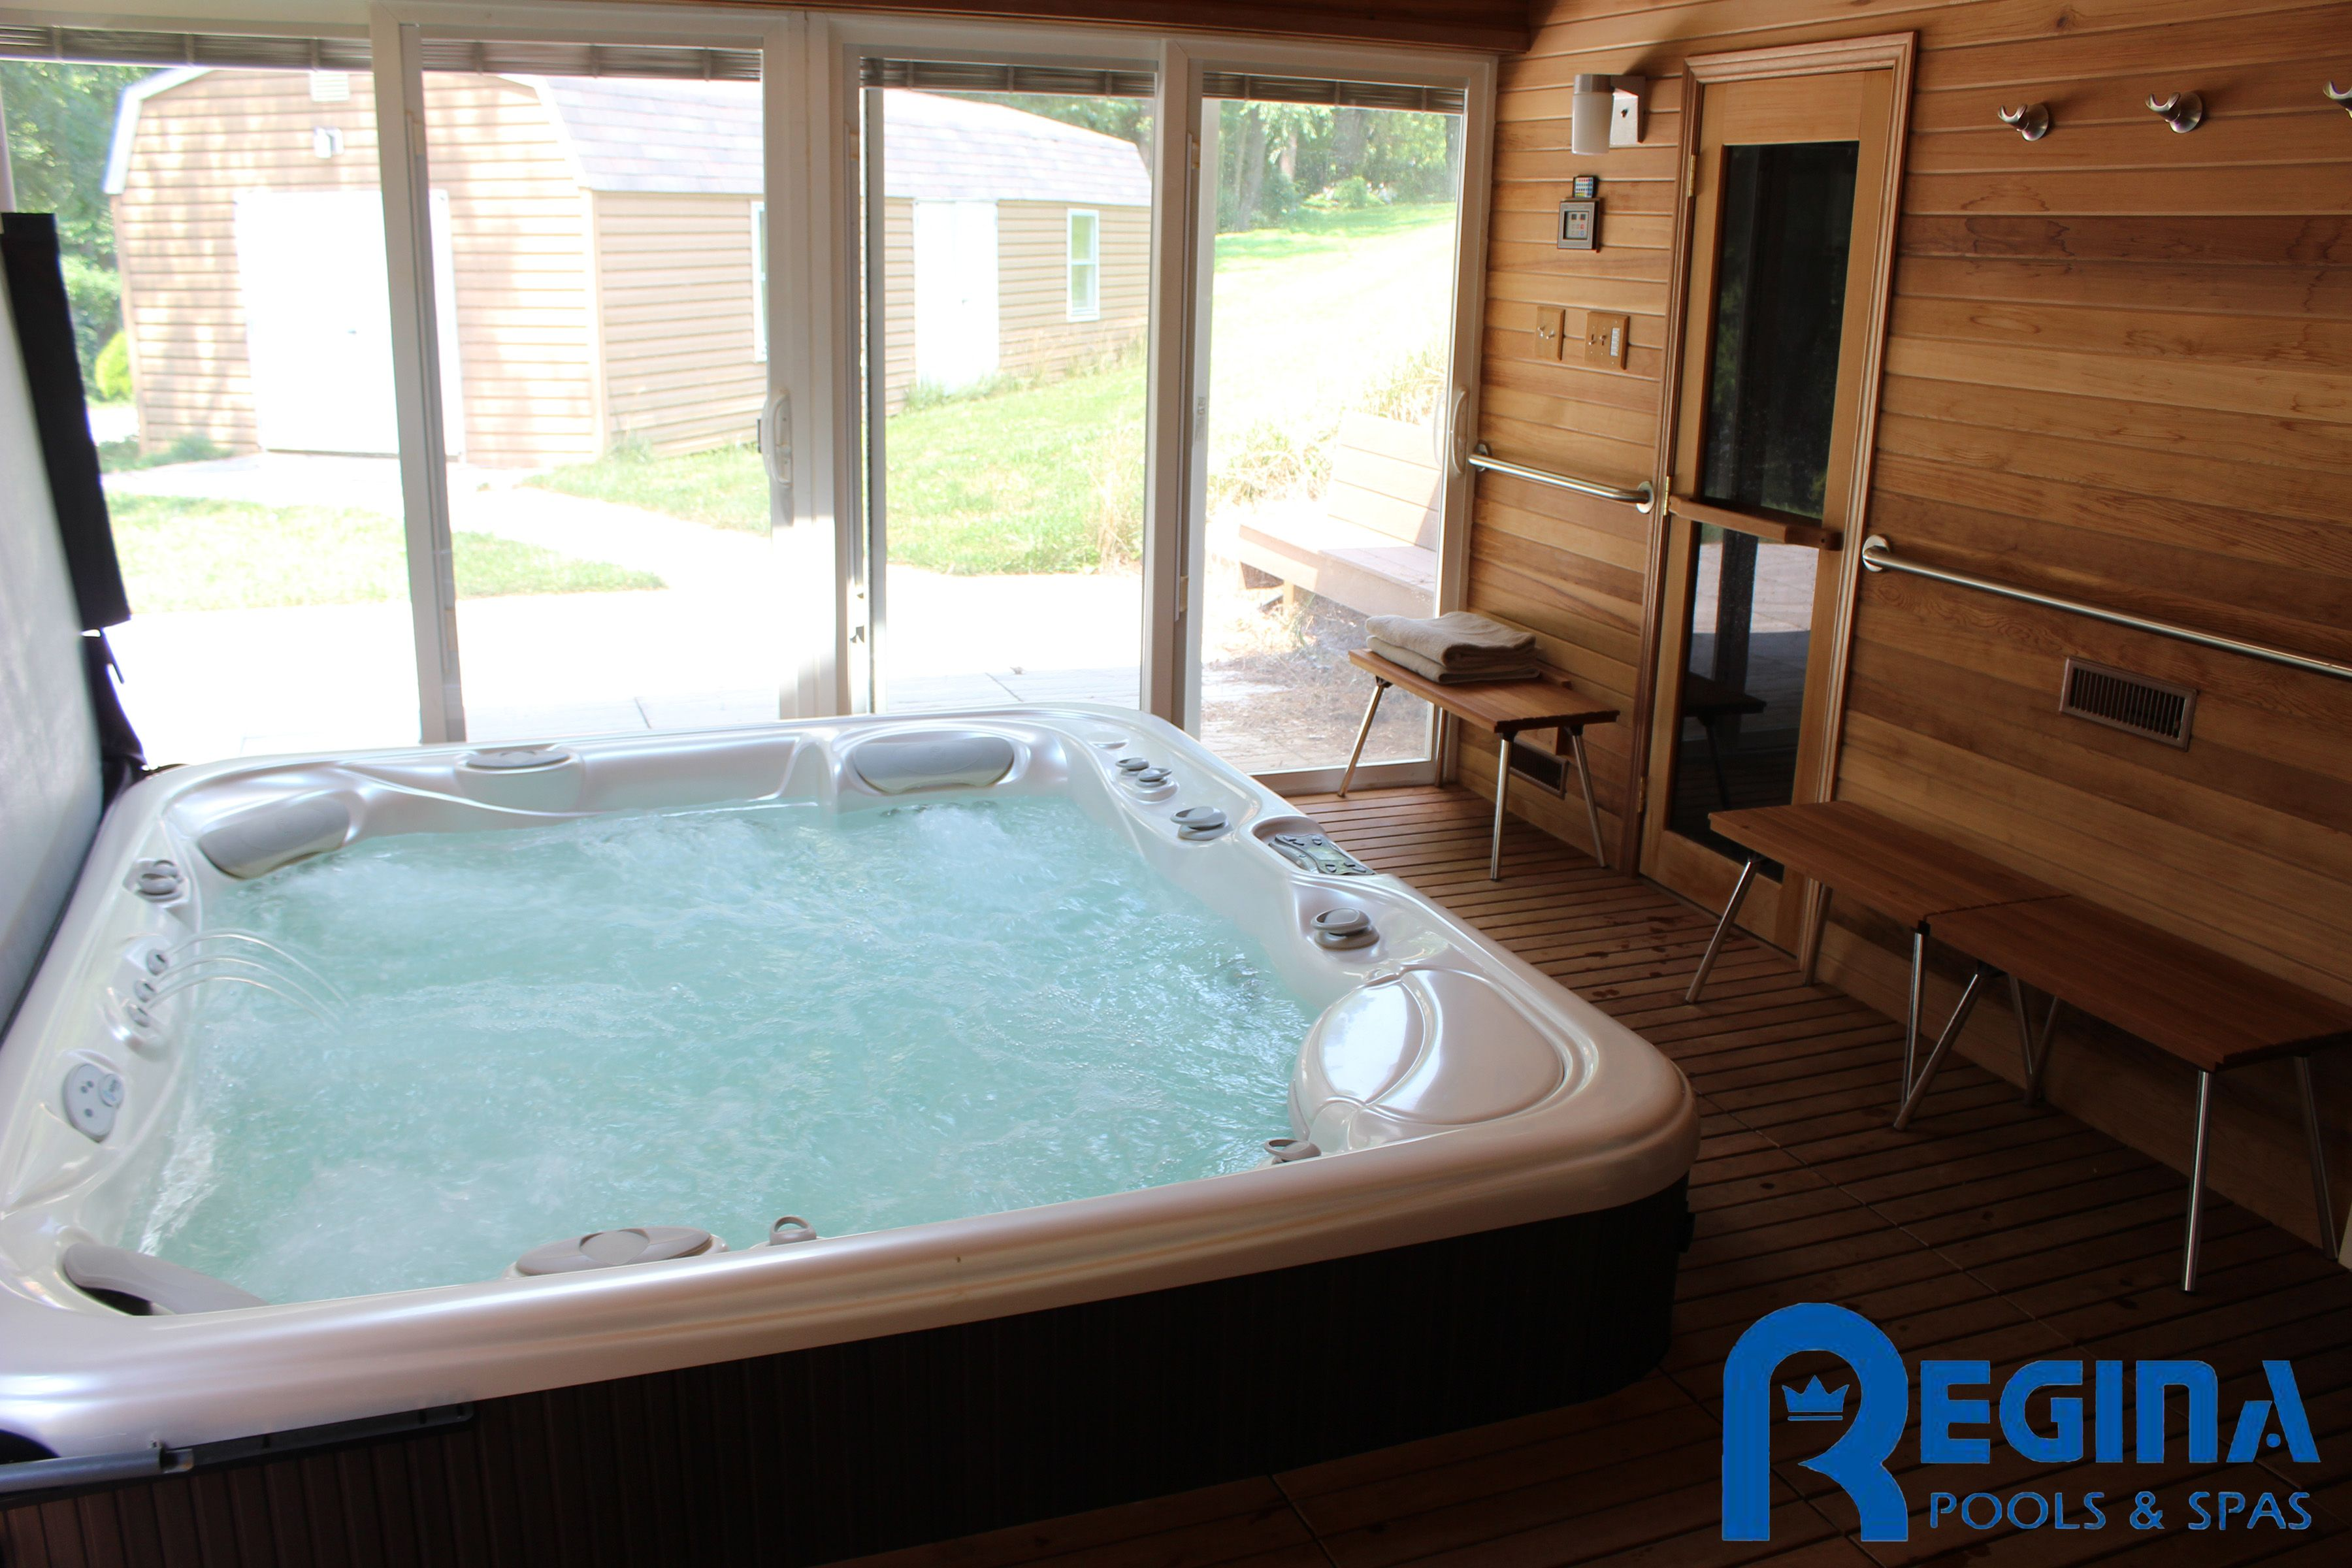 Hot Tub Sunk Into The Floor With Uprite Cover Lifter The